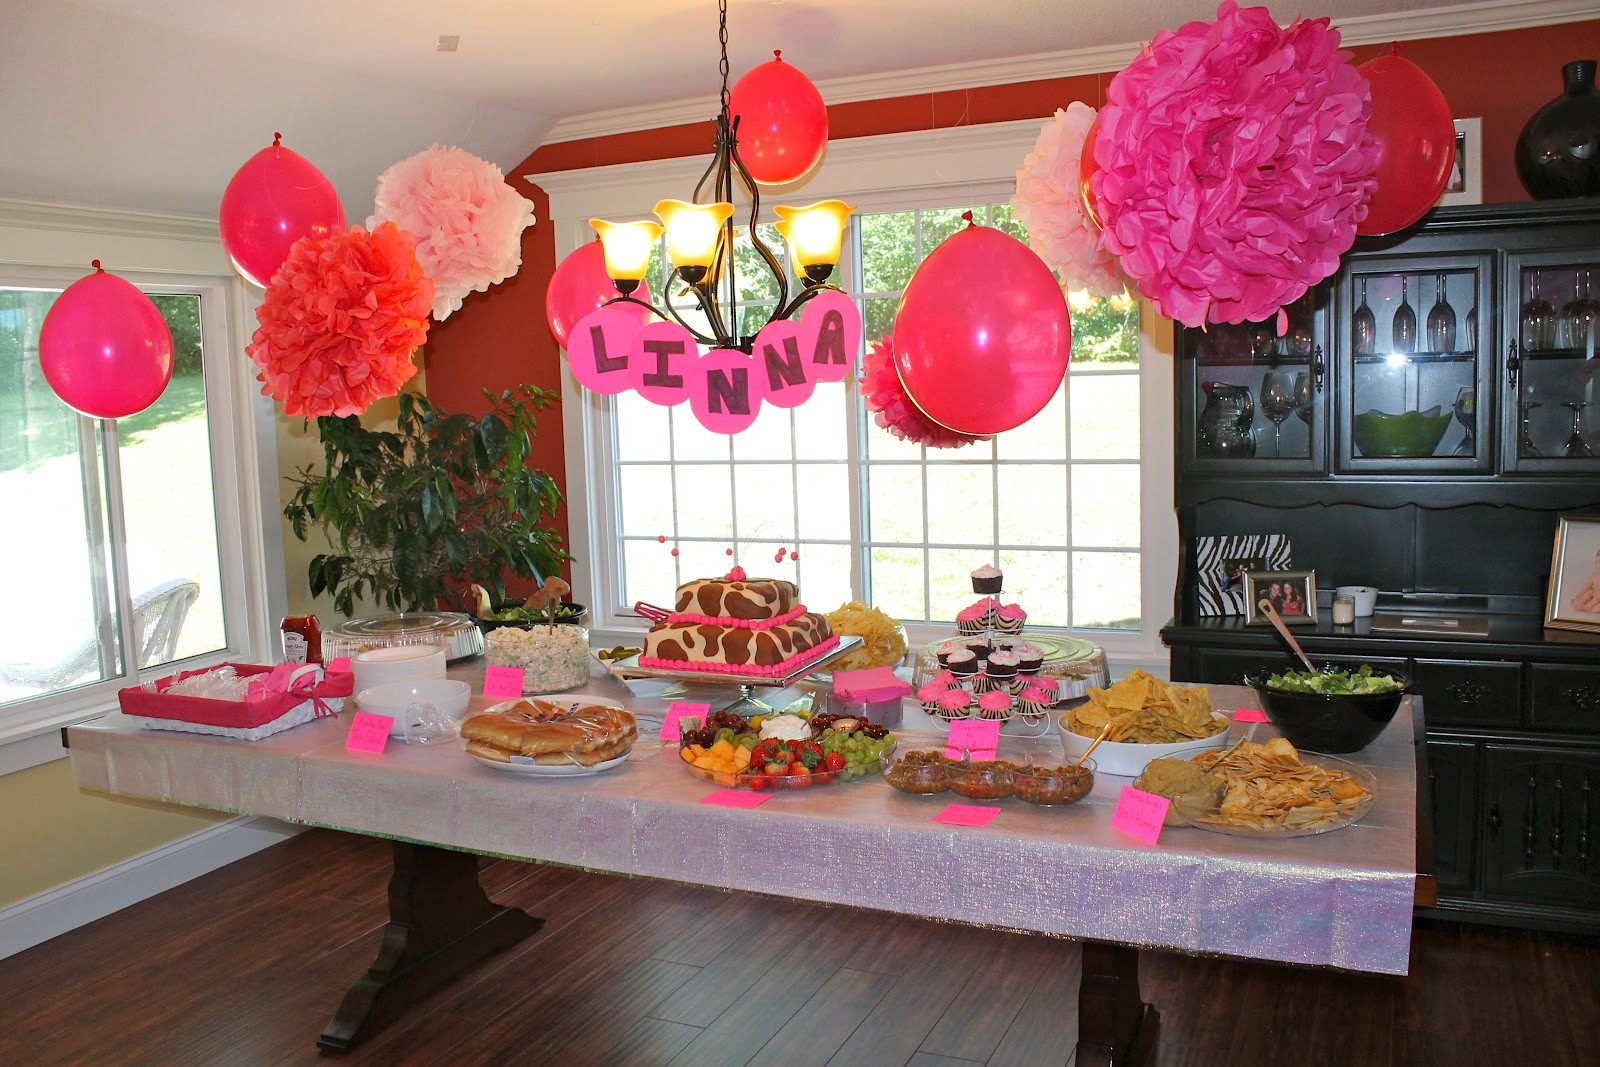 Best ideas about Baby First Birthday Decorations . Save or Pin MINNESOTA BABY Linna s 1st birthday party Now.